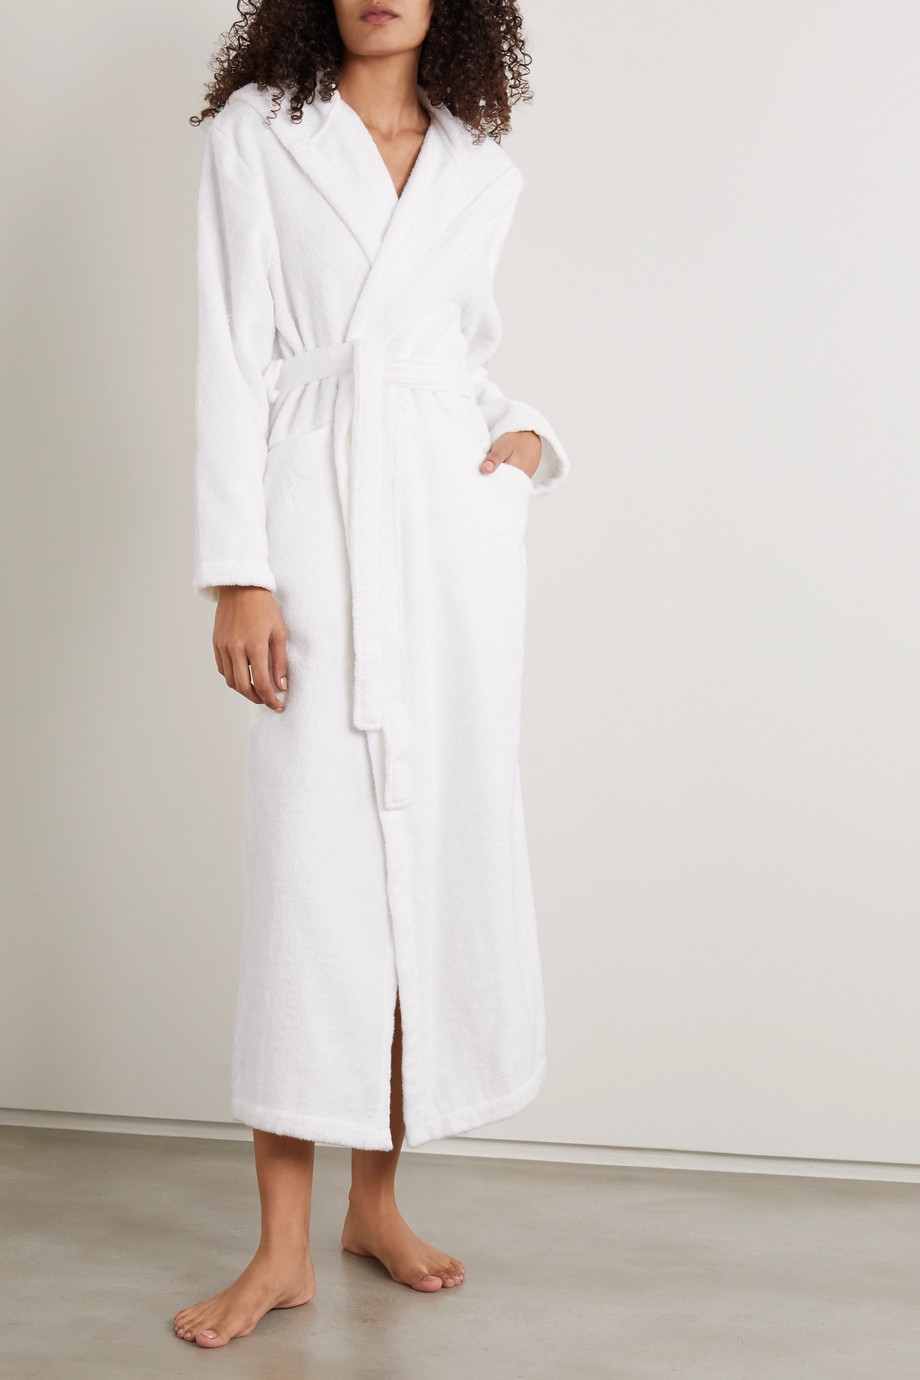 Skin Hamam belted cotton-terry robe